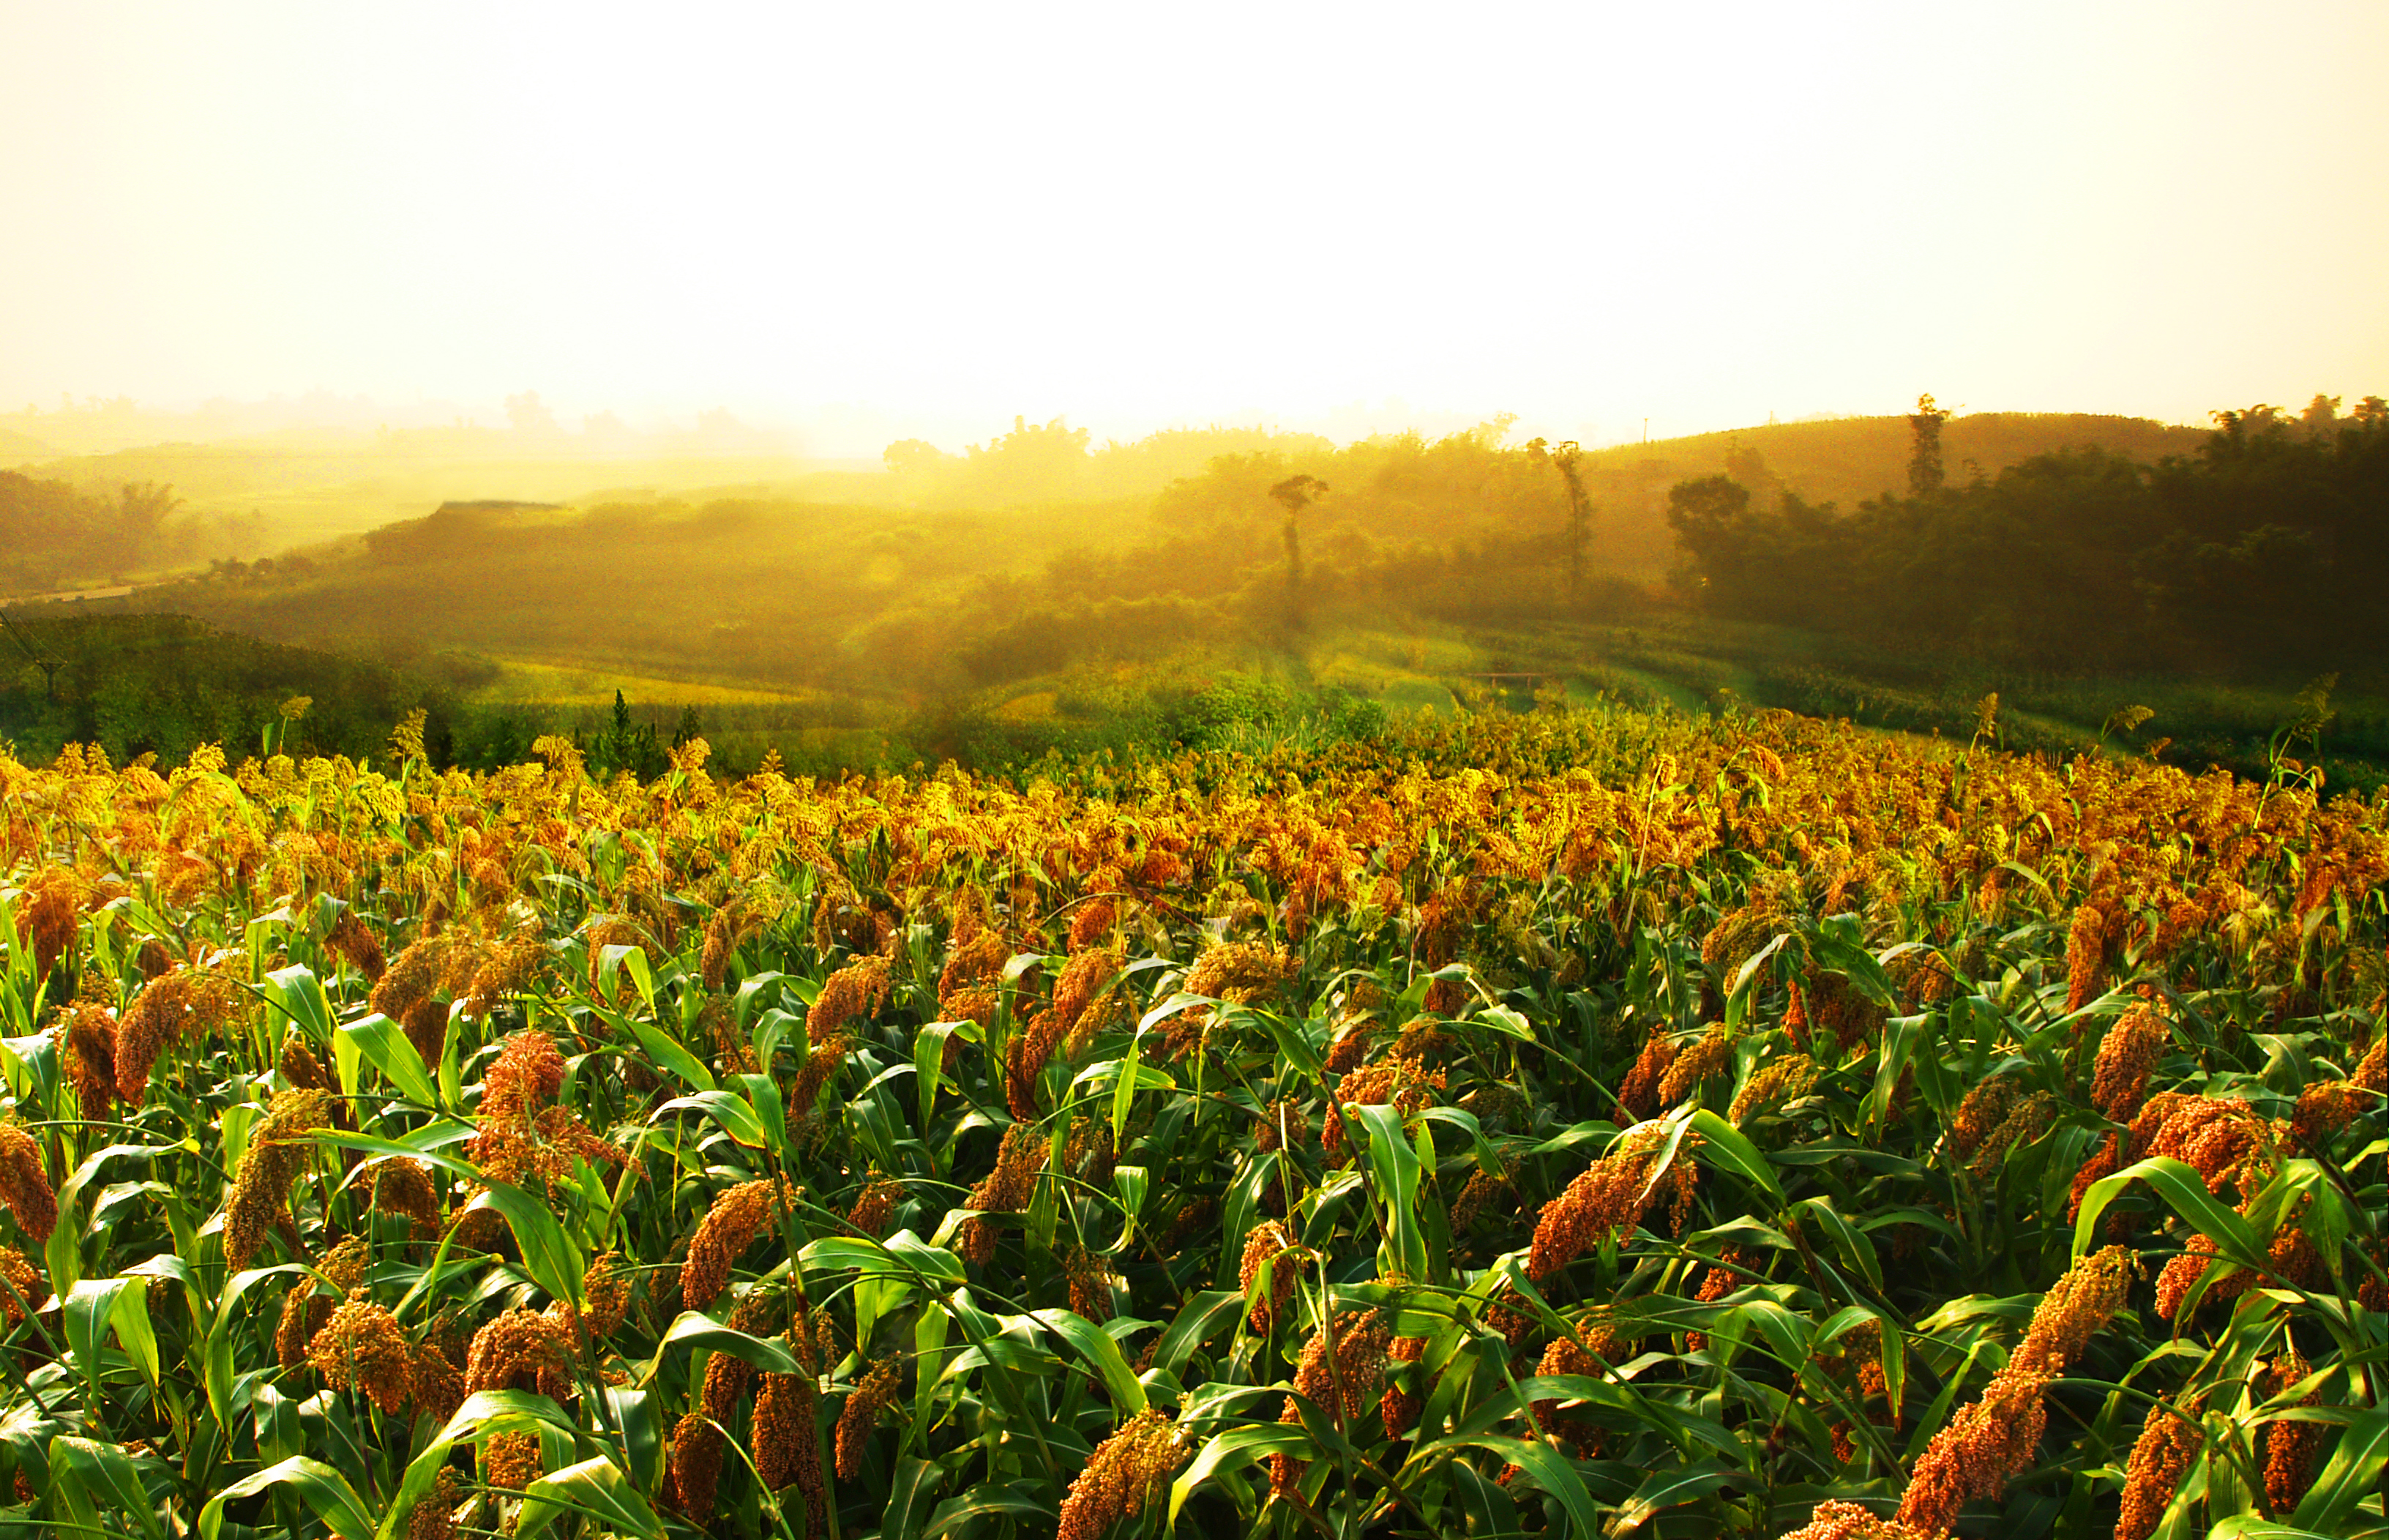 Sorghum fields near Luzhou Laojiao distillery